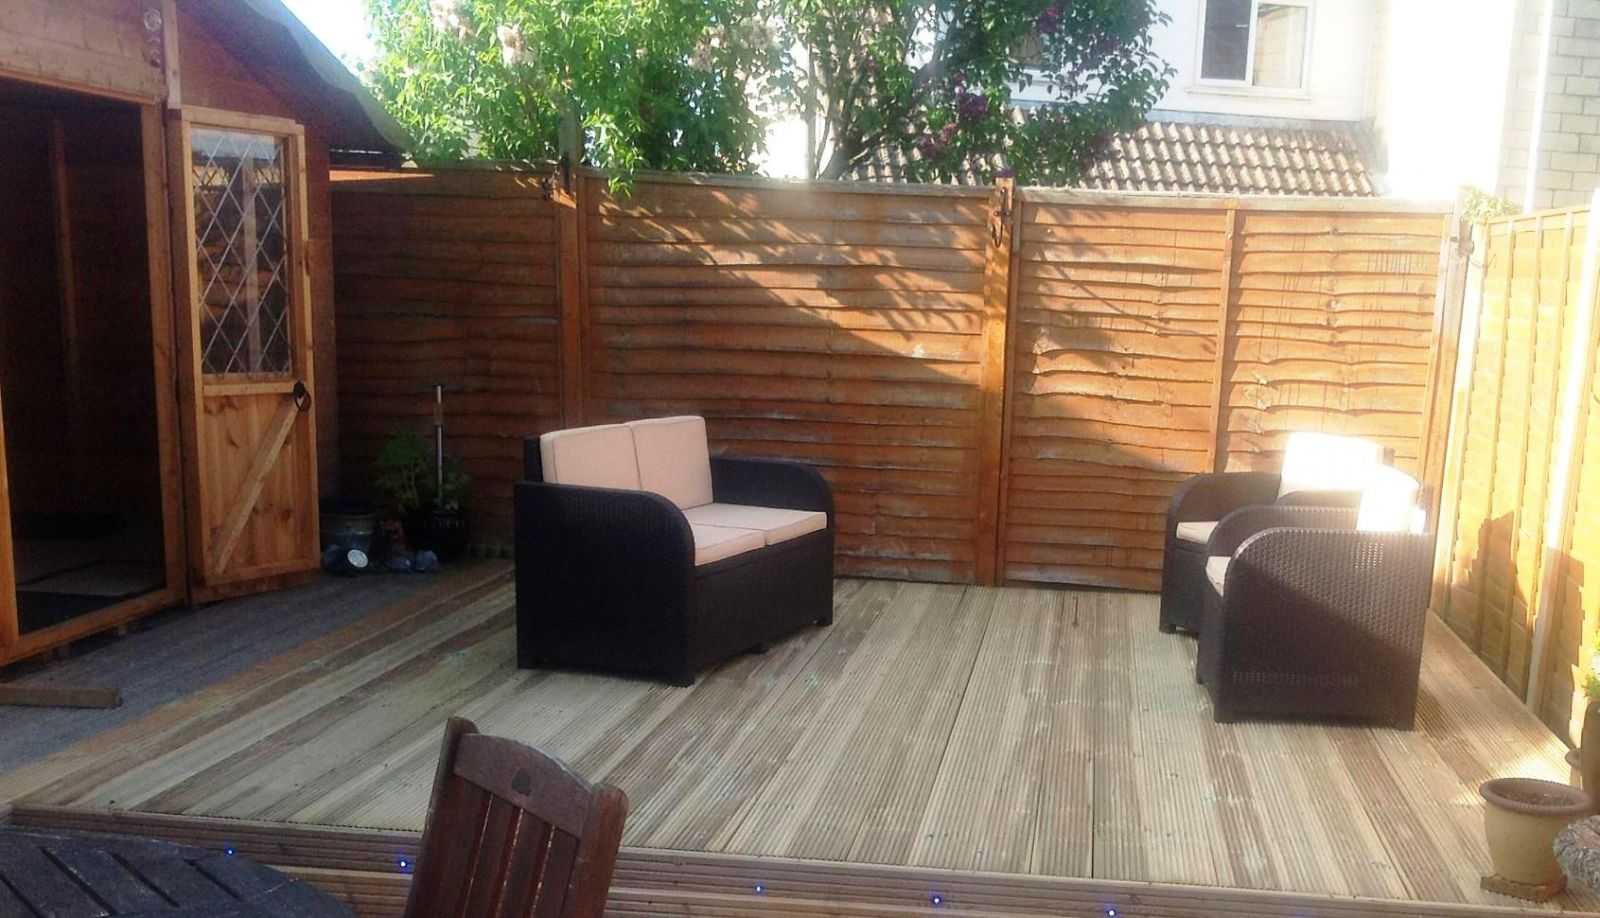 Timber deck kit 5m boards wooden garden for Garden decking kits on ebay